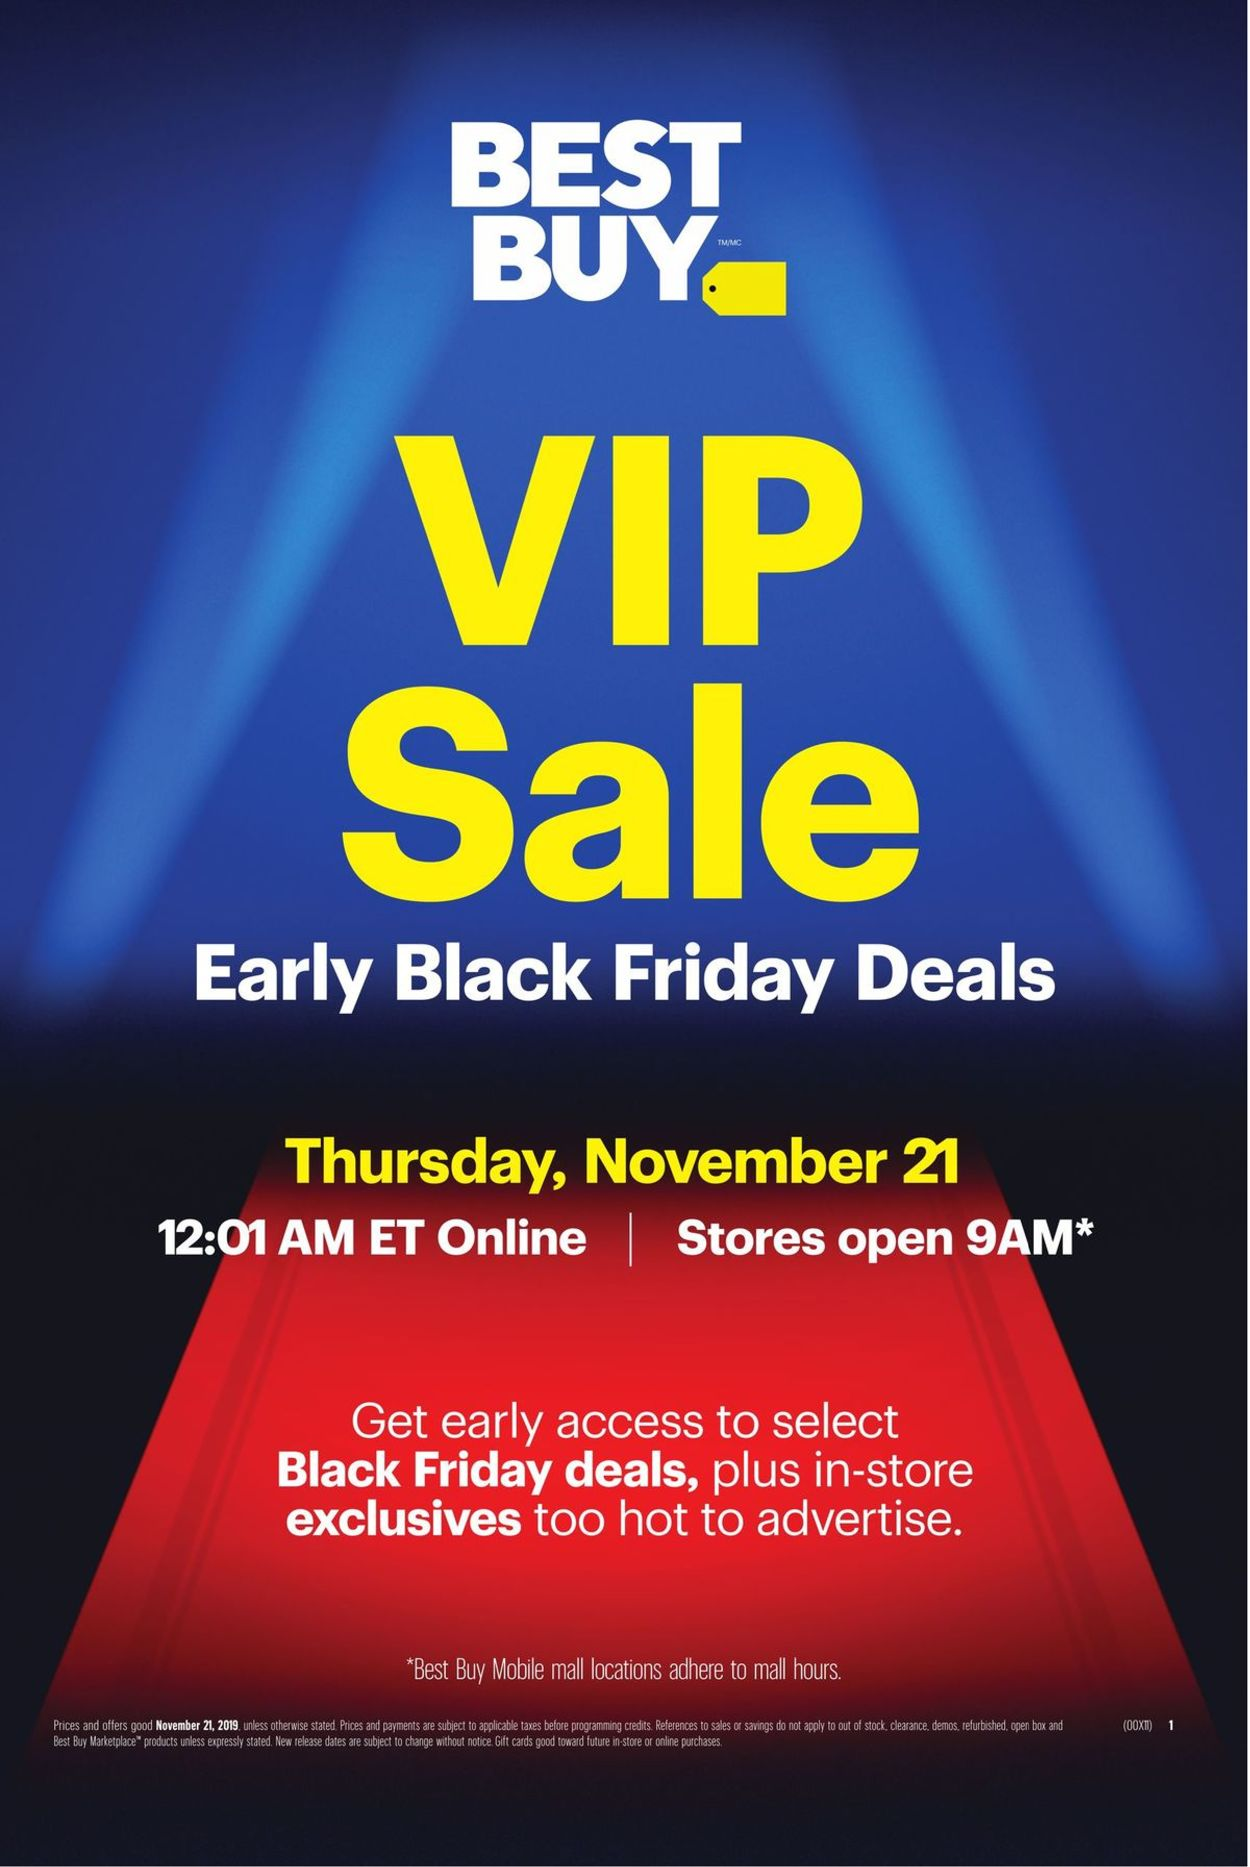 Best Buy - Early Black Friday Deals 2019